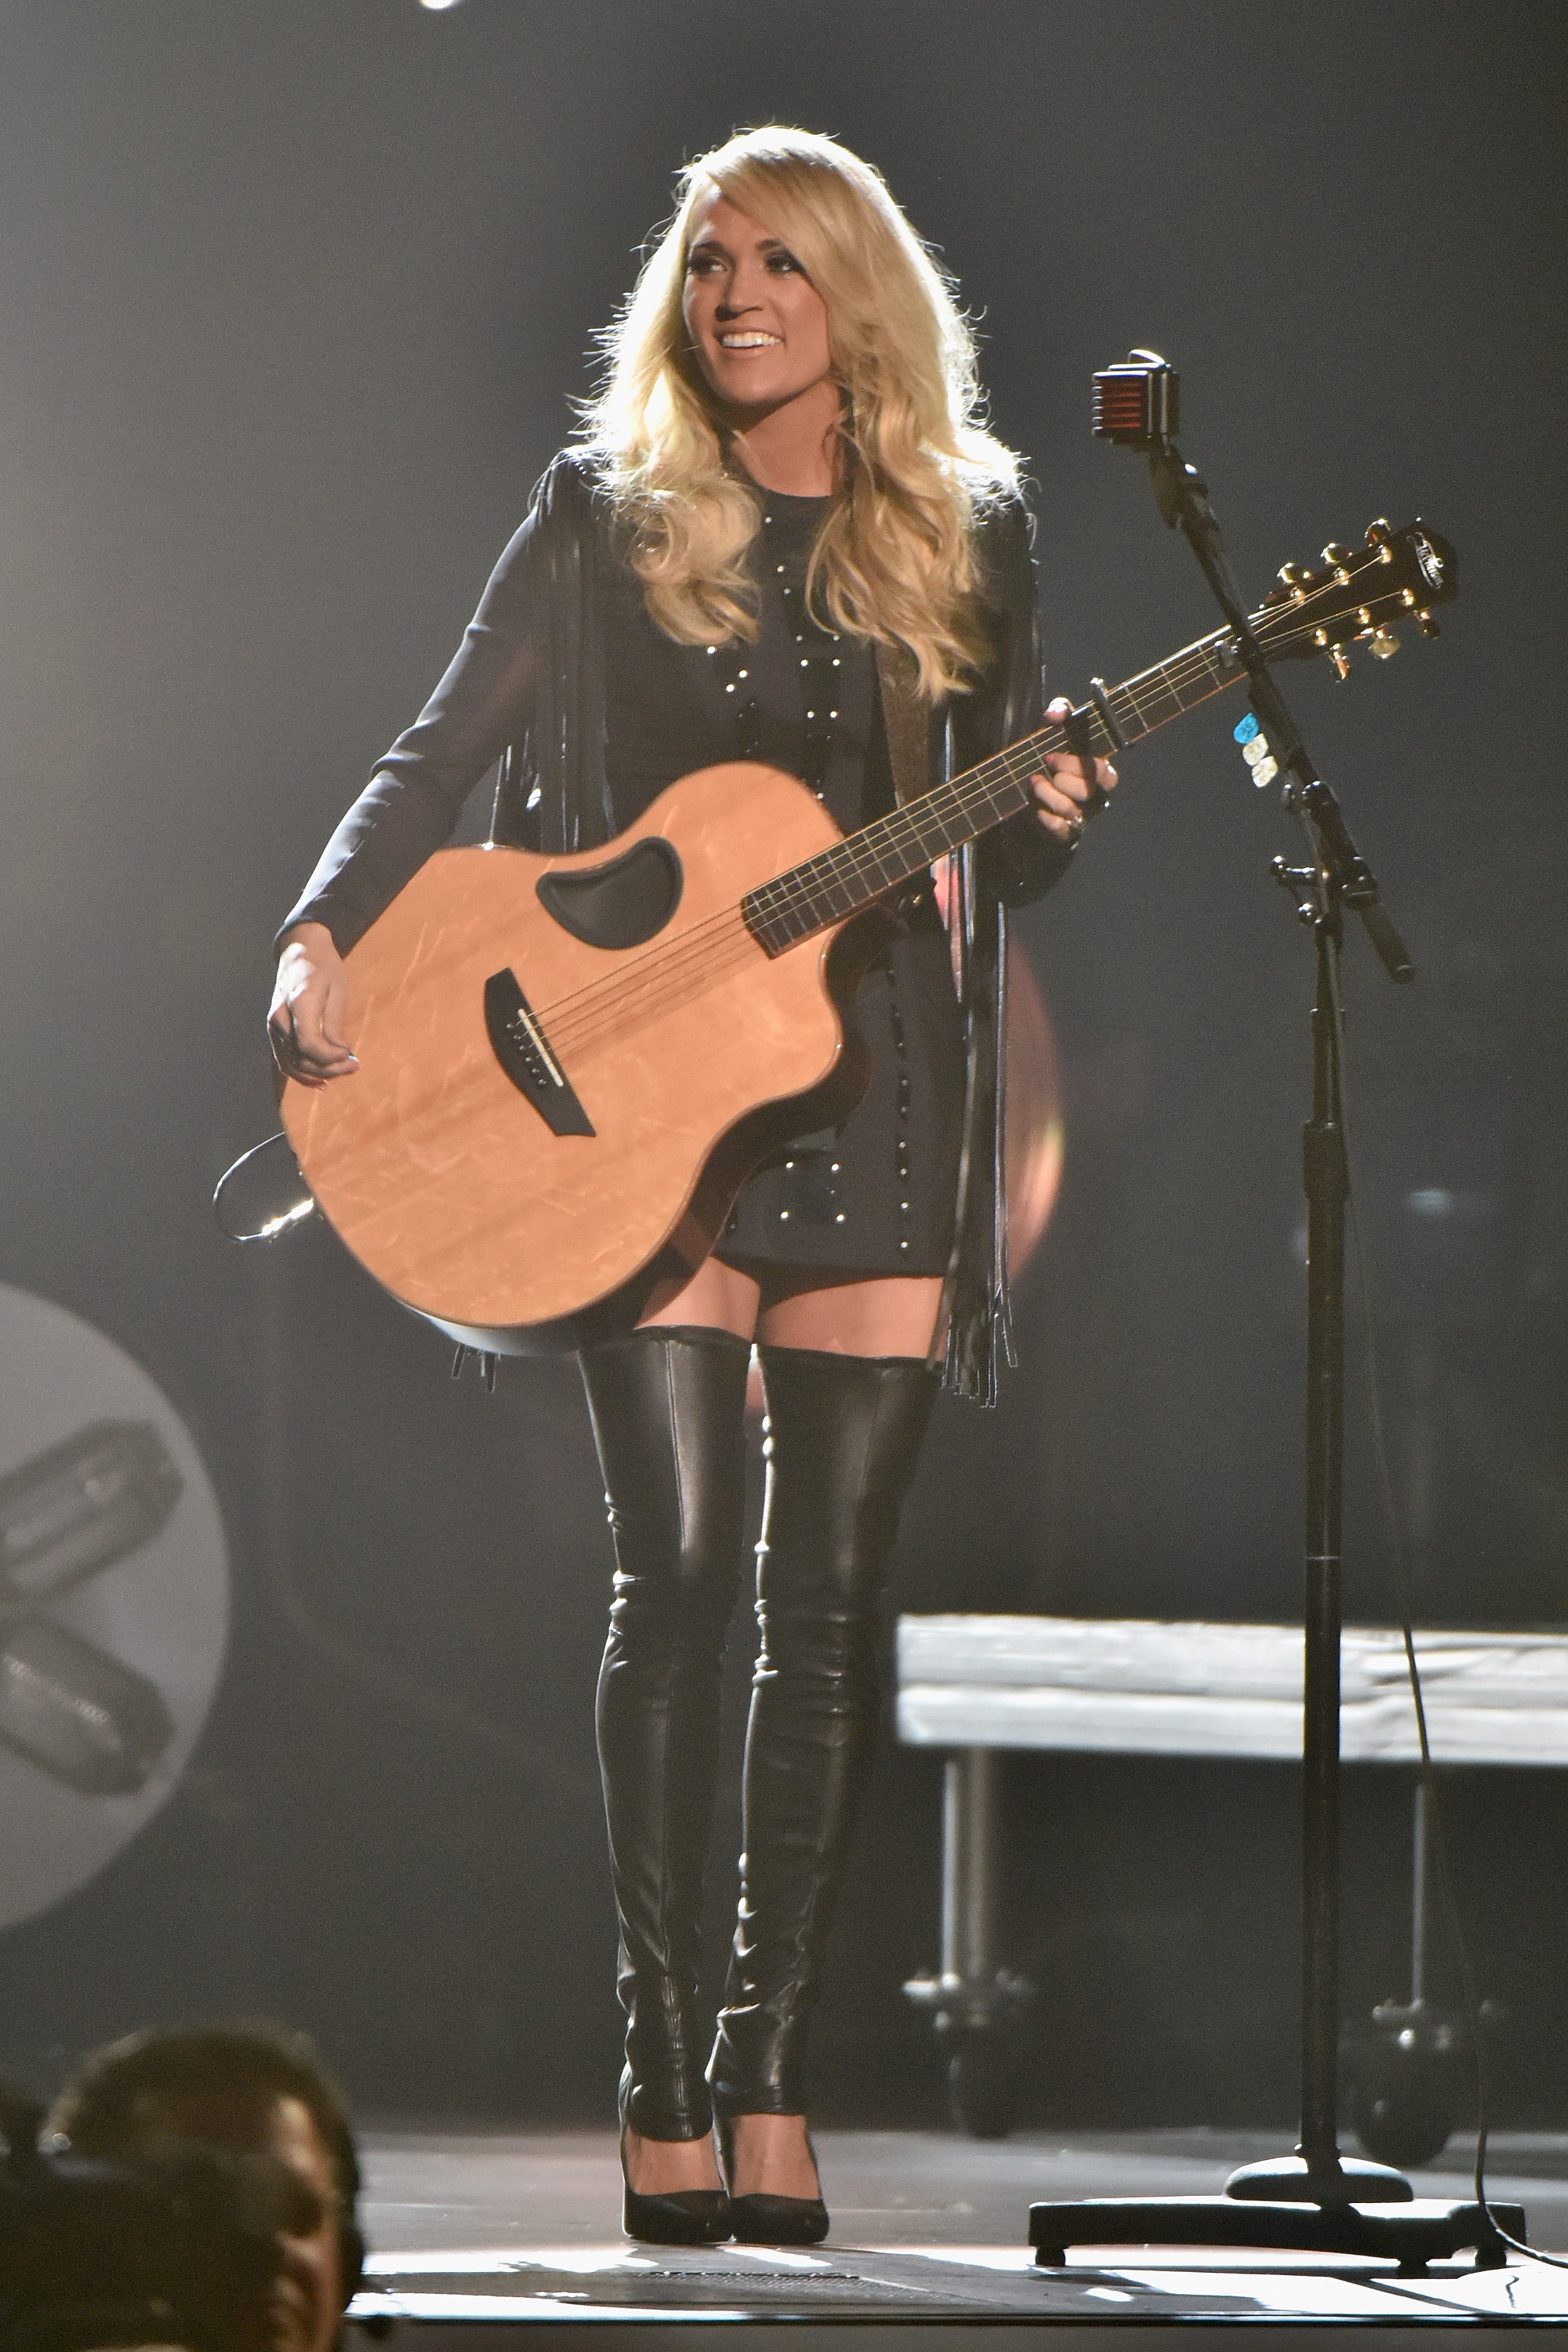 Carrie Underwood performs onstage at the 49th annual CMA Awards at the Bridgestone Arena on November 4, 2015 in Nashville